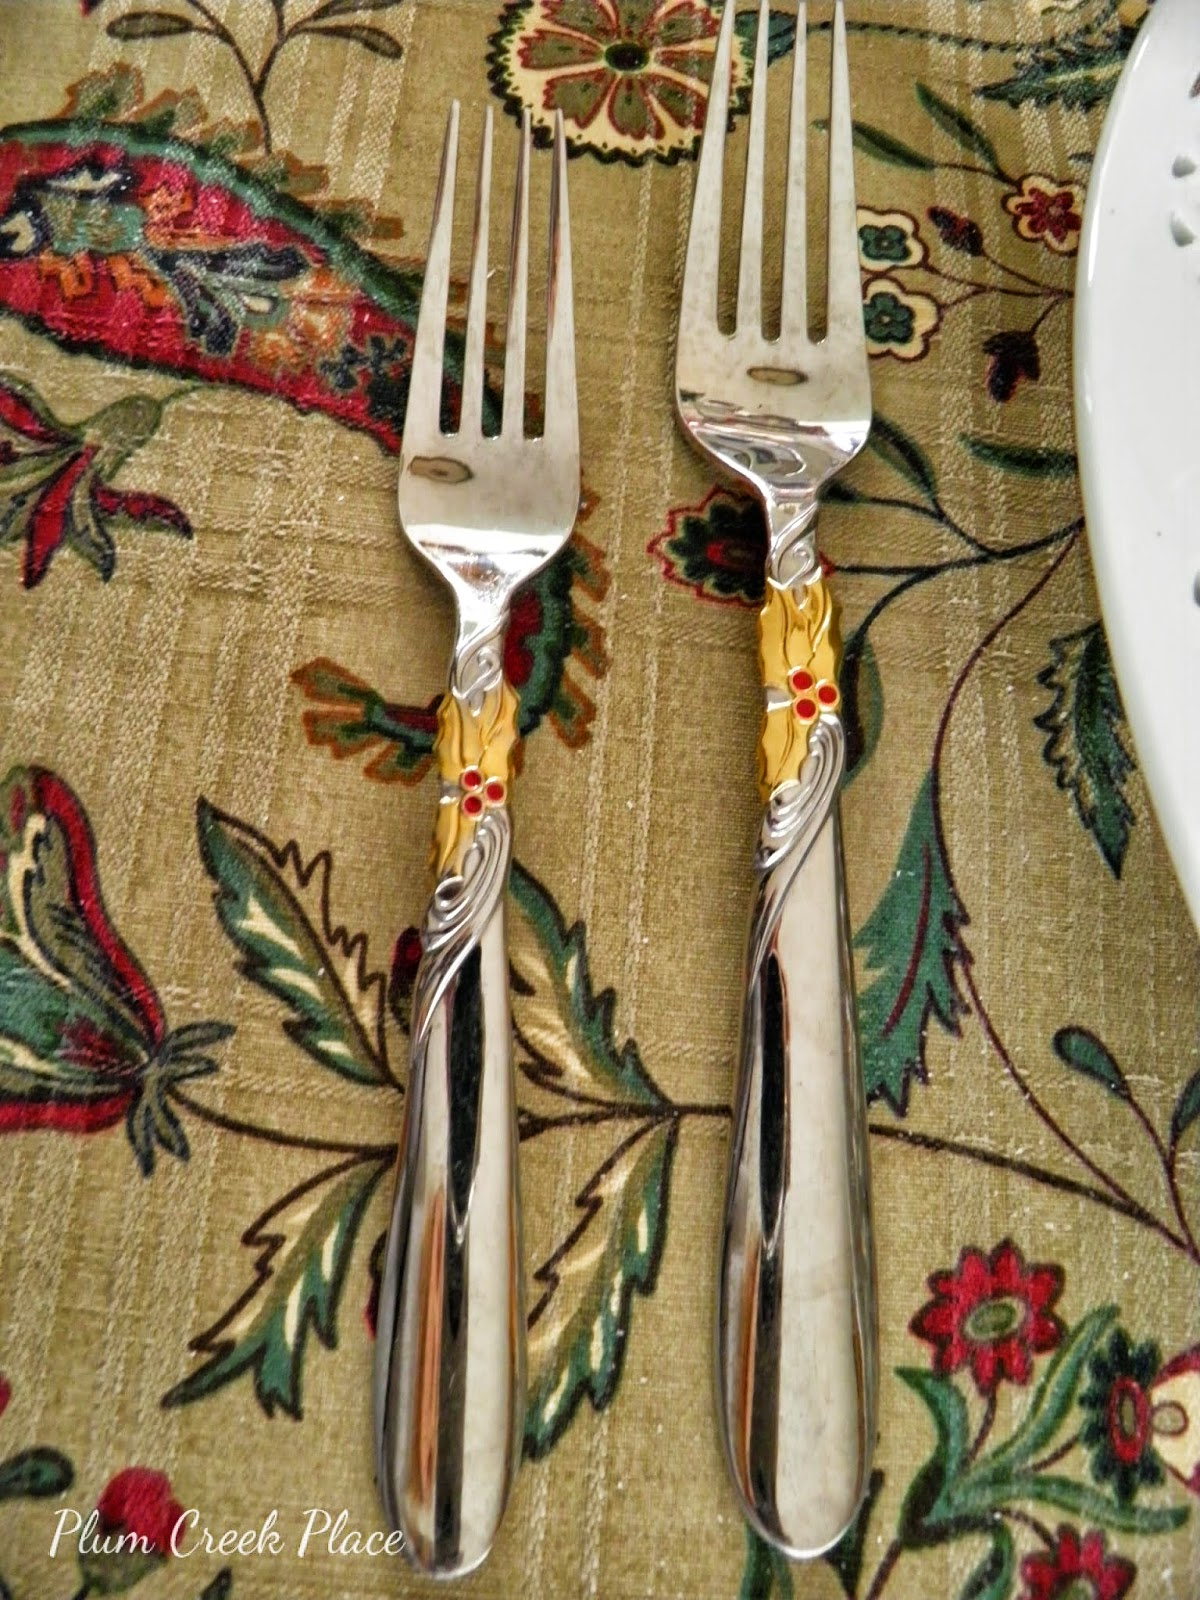 Yamazaki Holiday Bouquet Flatware, Christmas Flatware